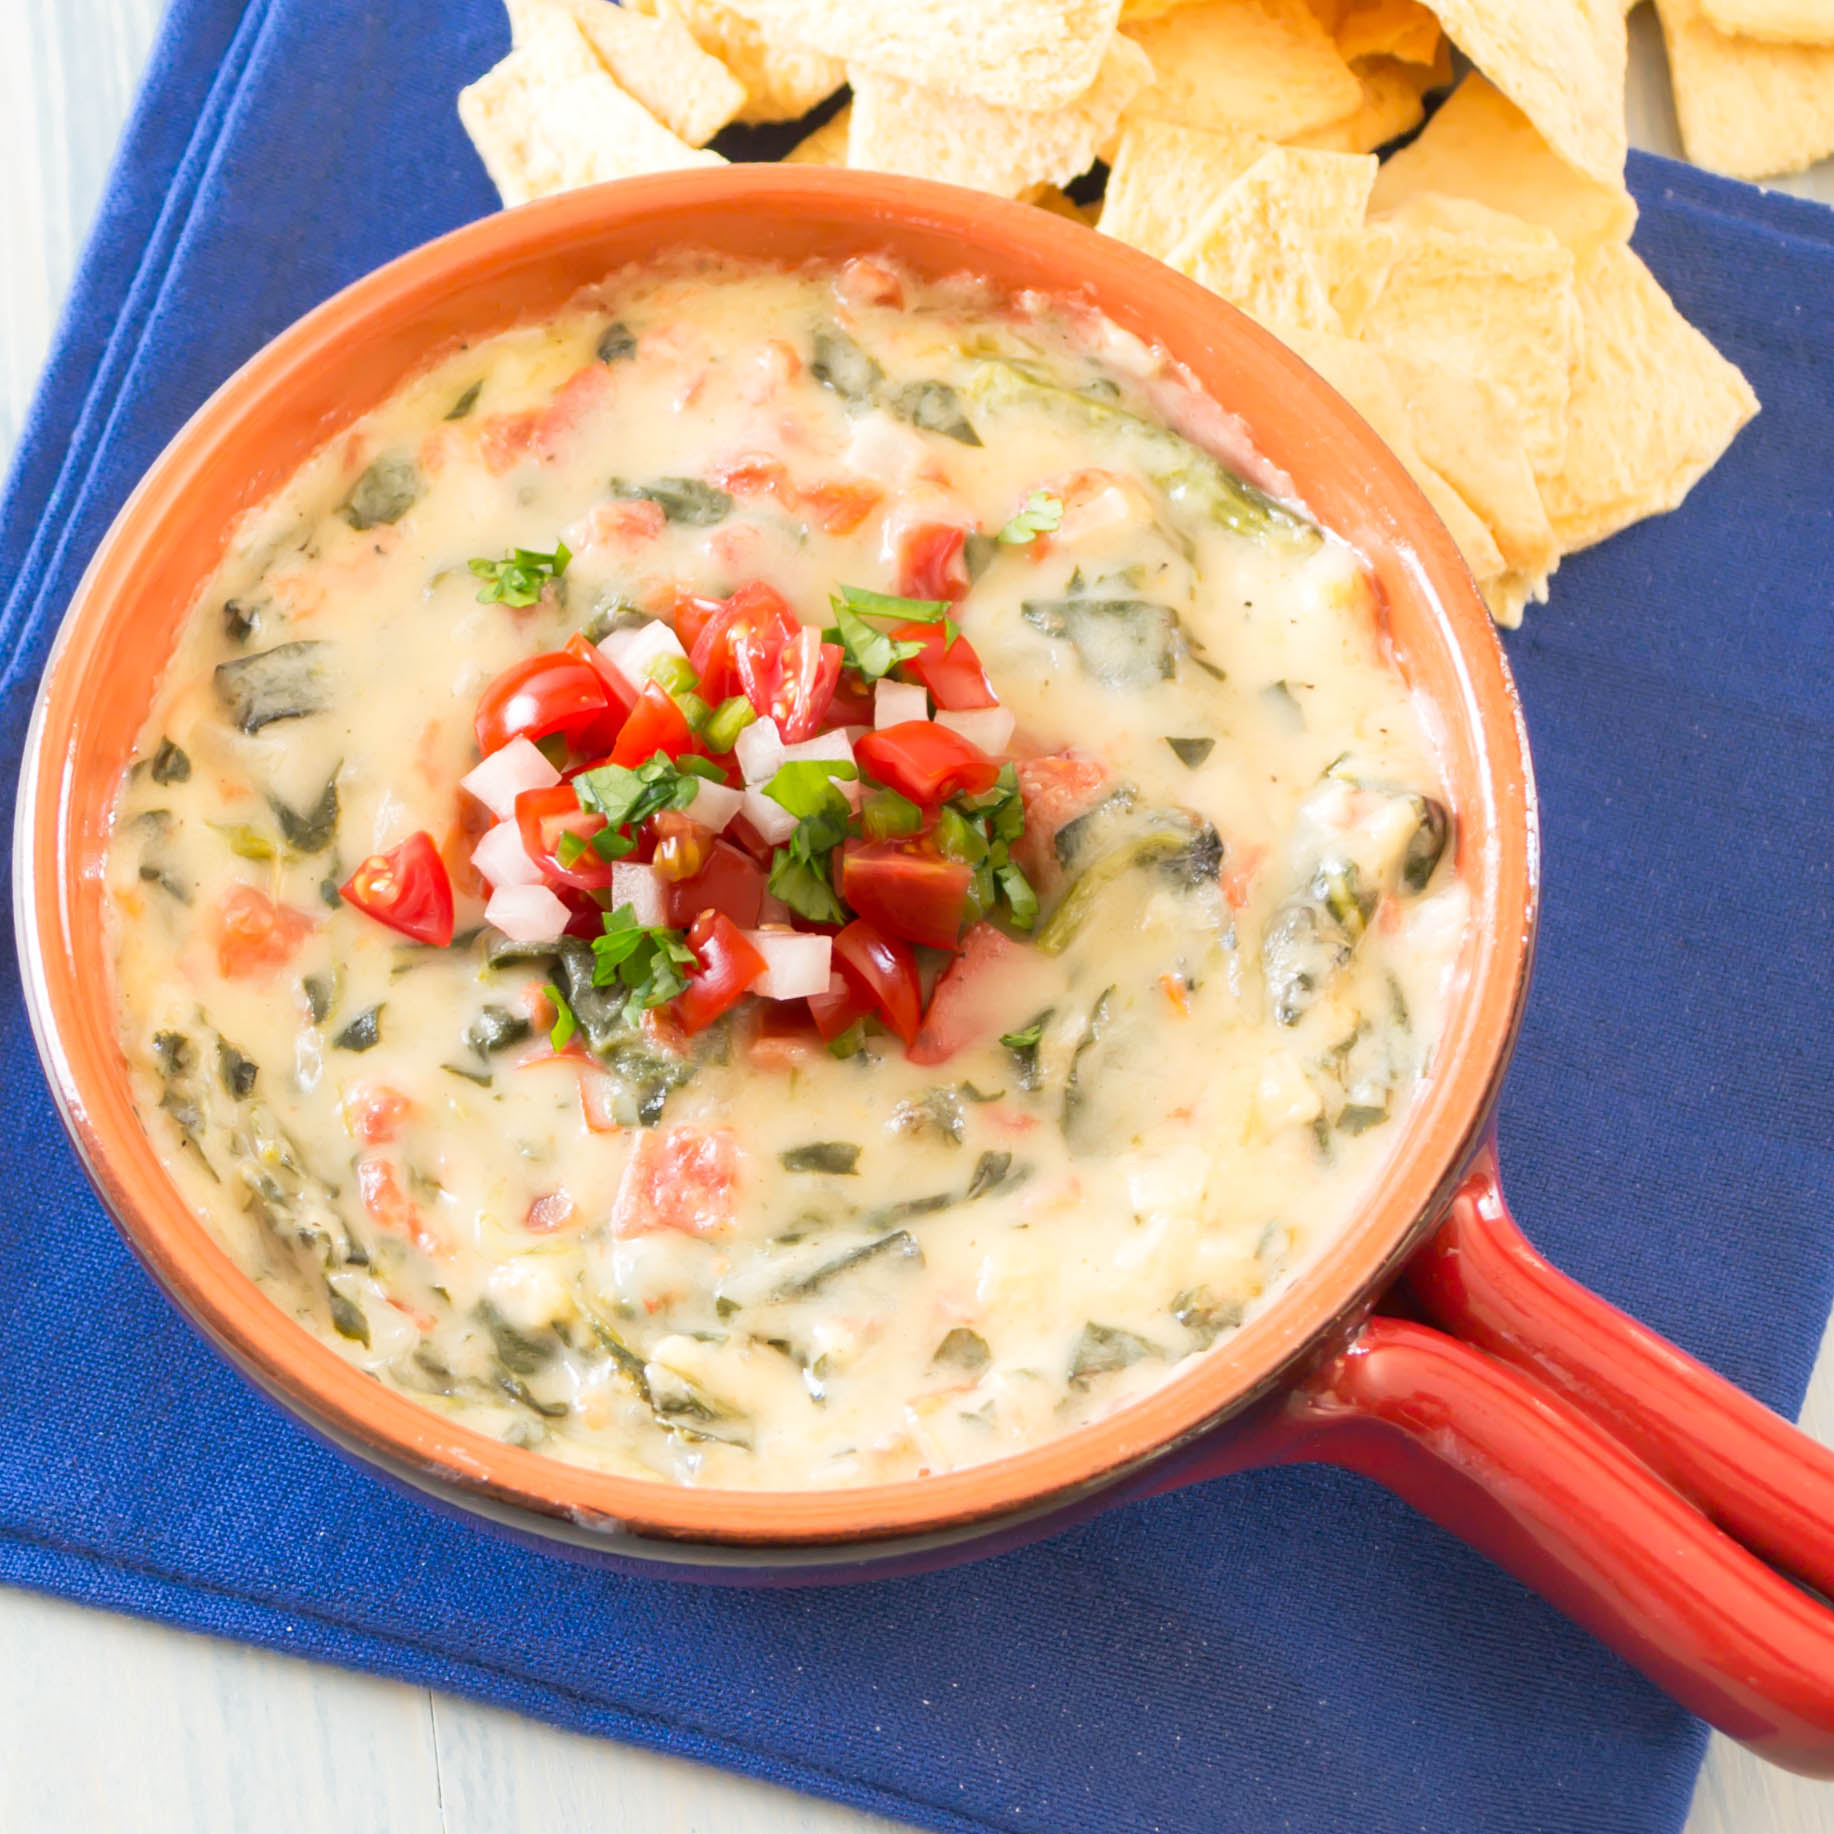 Now, back to this delicious Mexican Spinach Dip.